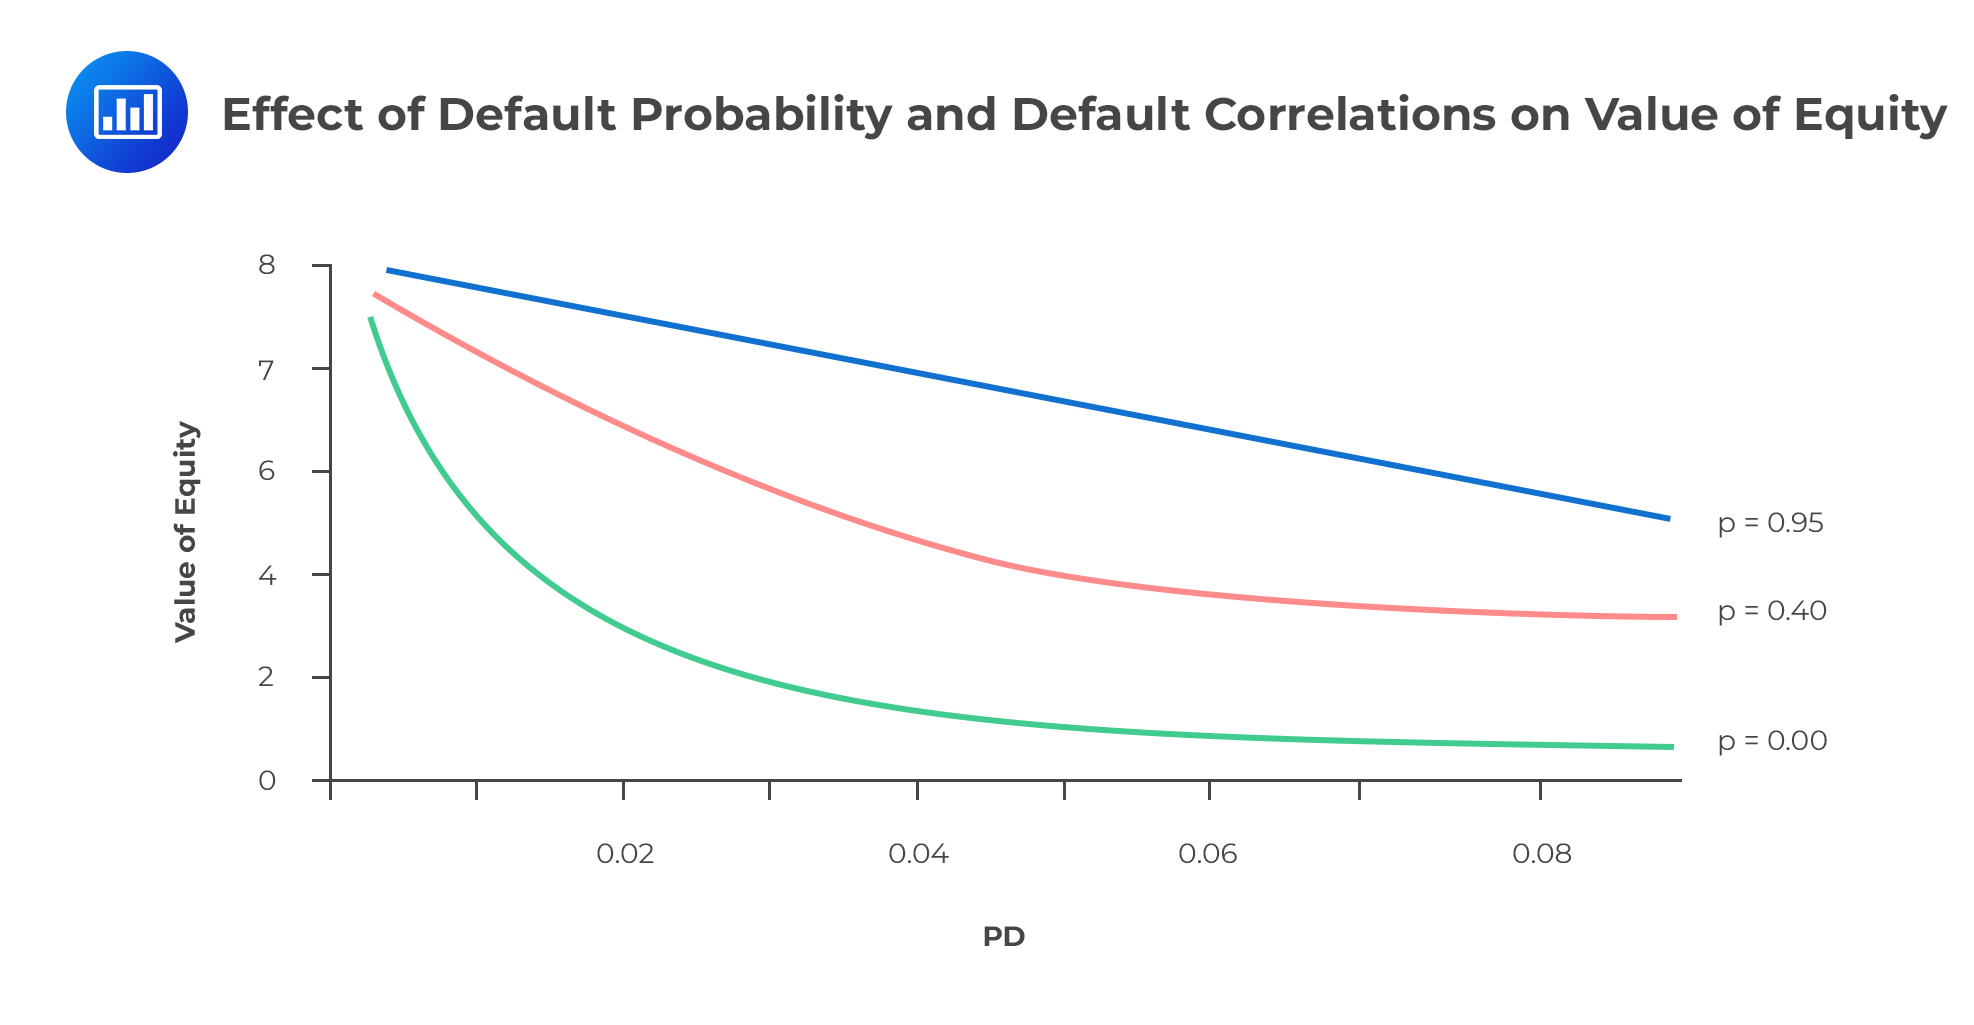 Effect of Default Probability and Default Correlations on Value of Equity